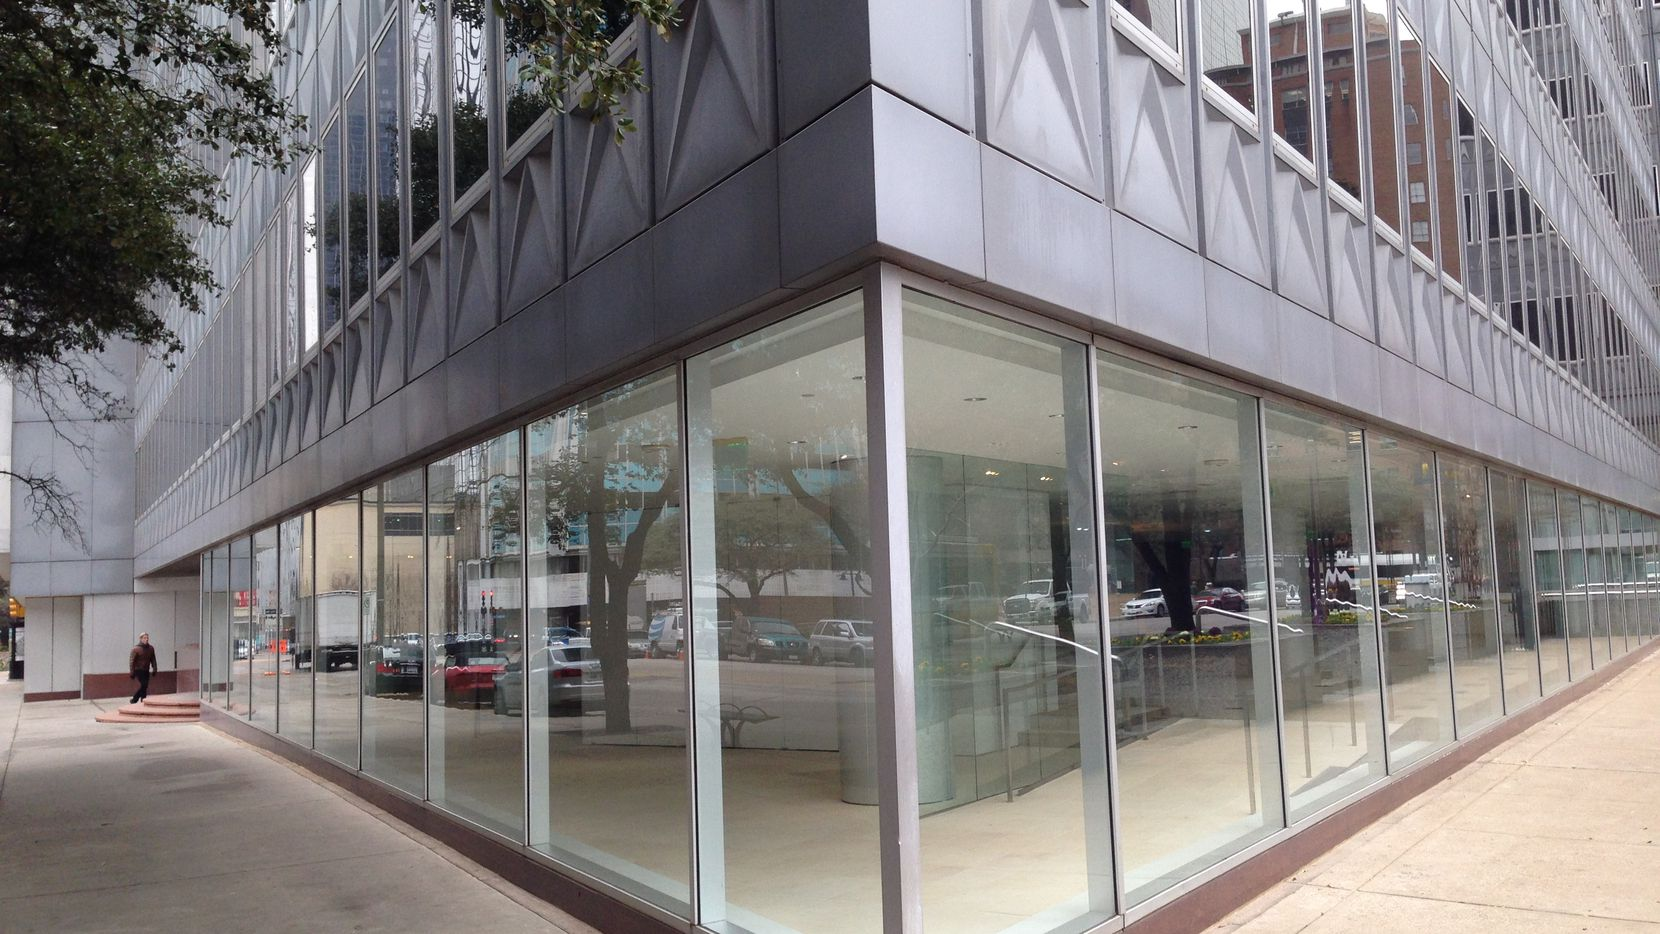 The Dallas Center for Architecture will locate in the ground floor of the landmark Republic Center tower at Pacific Avenue and St. Paul Street.